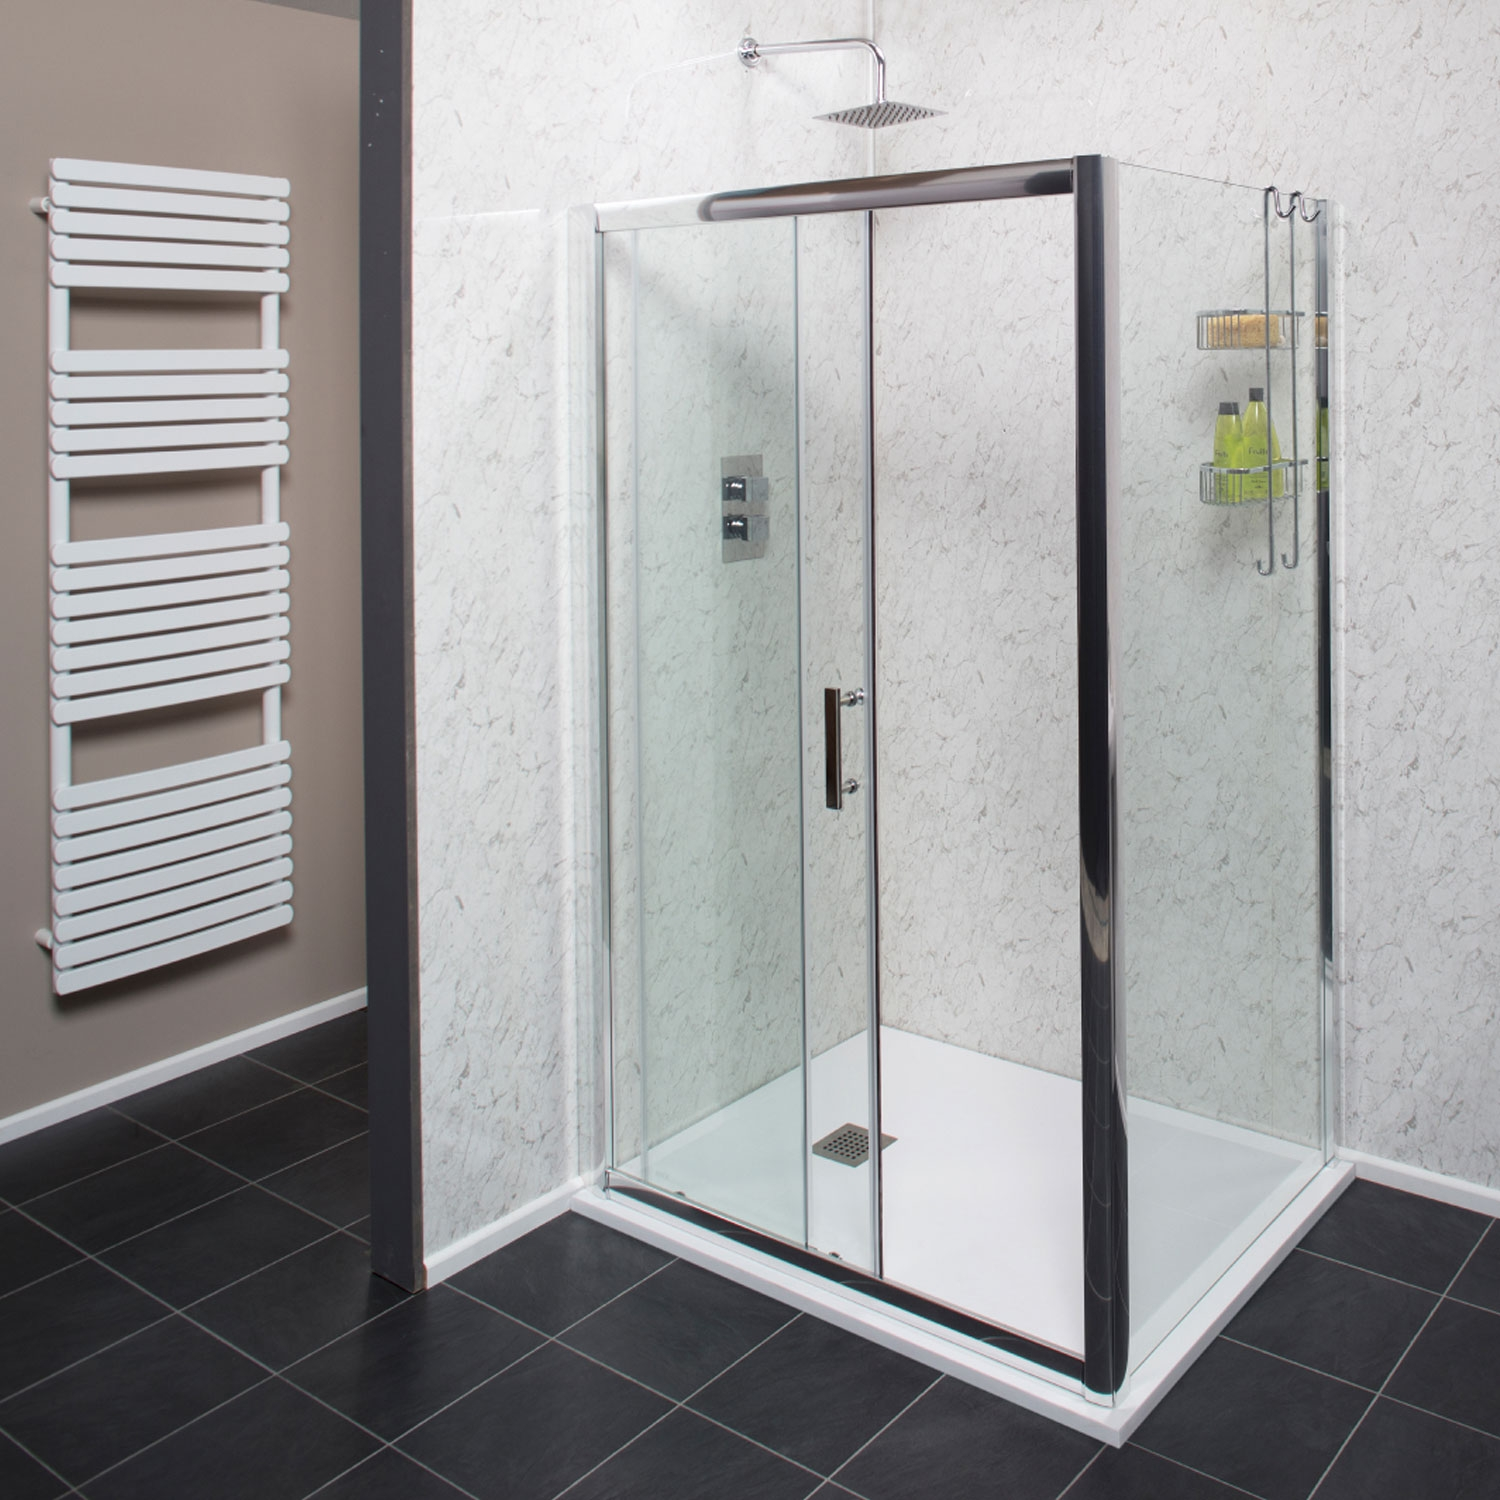 Cali Cass Six Sliding Shower Door 1100mm Wide - 6mm Glass